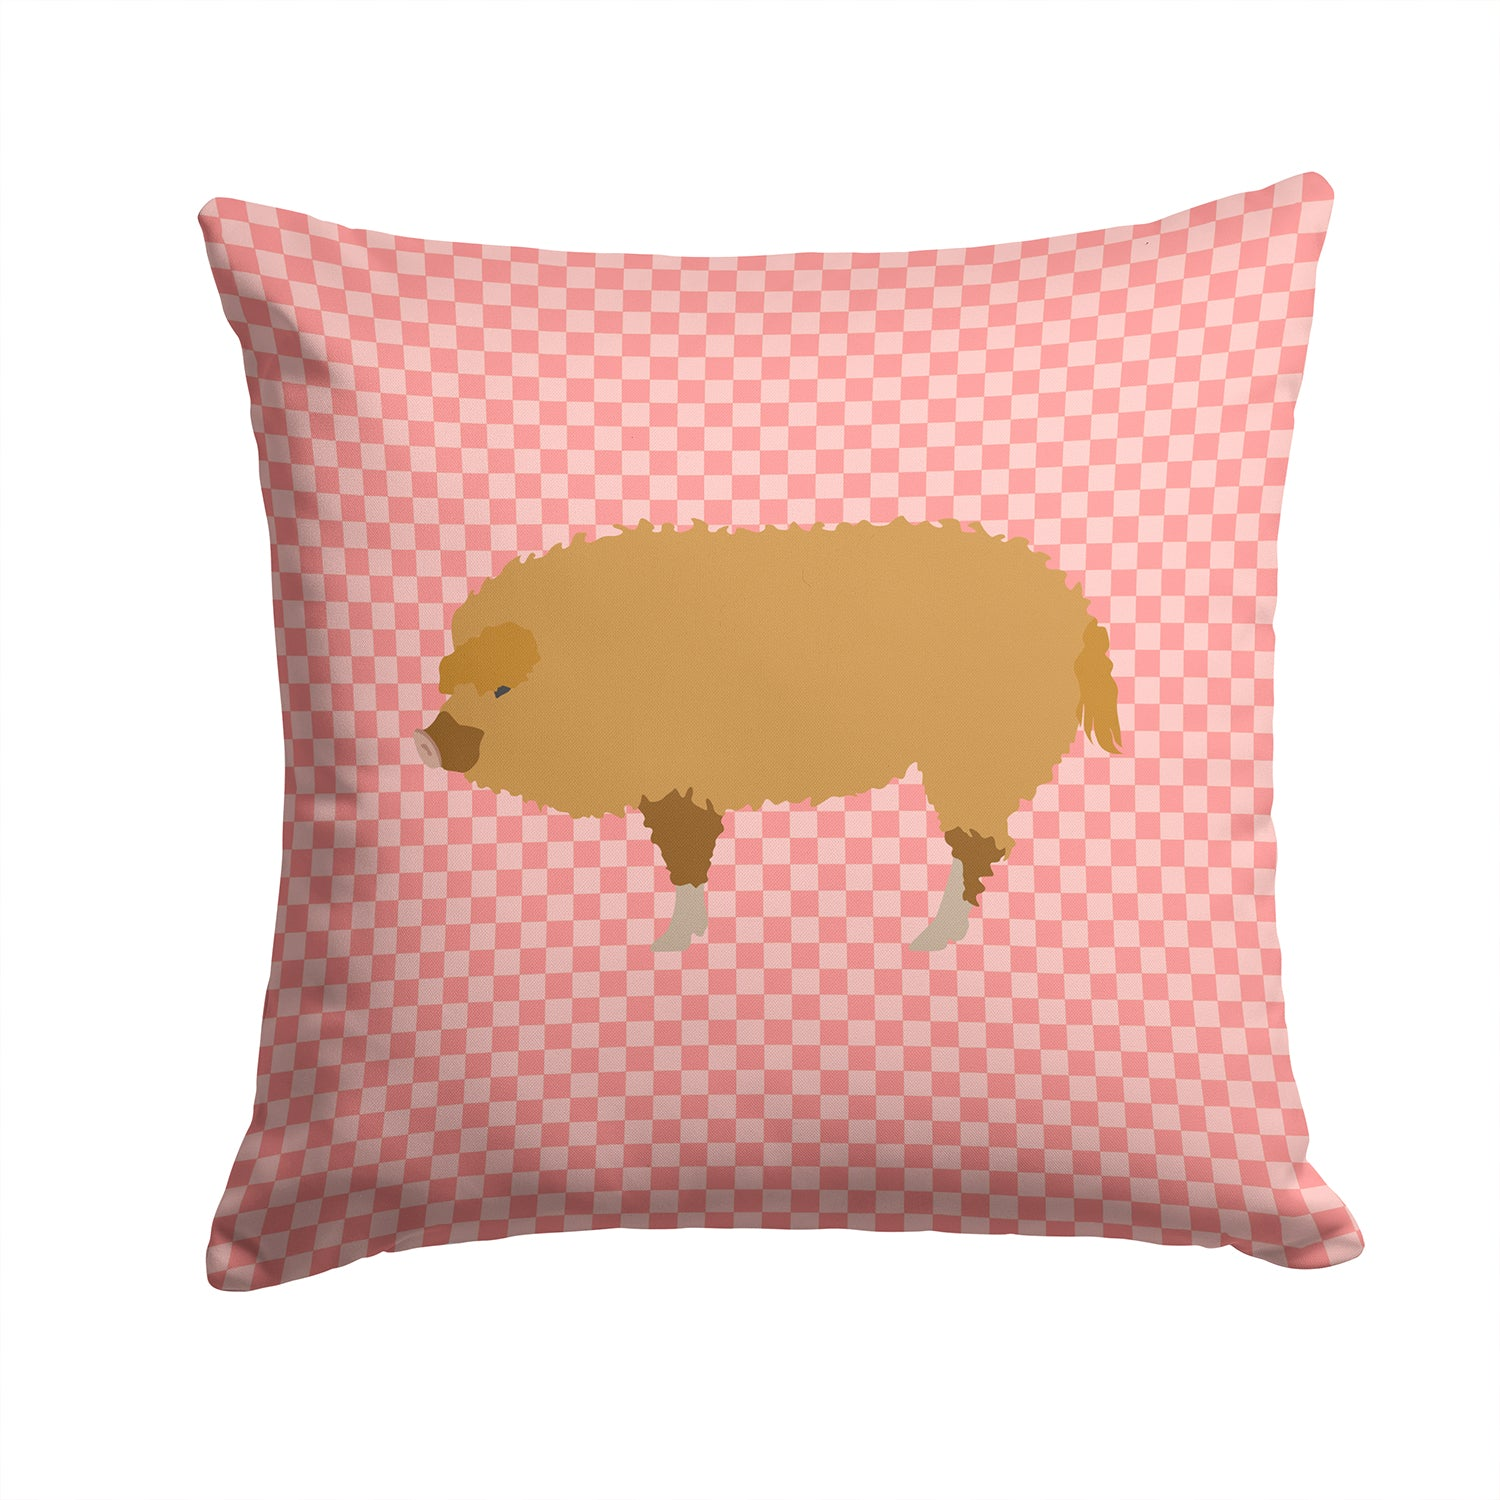 Hungarian Mangalica Pig Pink Check Fabric Decorative Pillow BB7934PW1414 by Caroline's Treasures